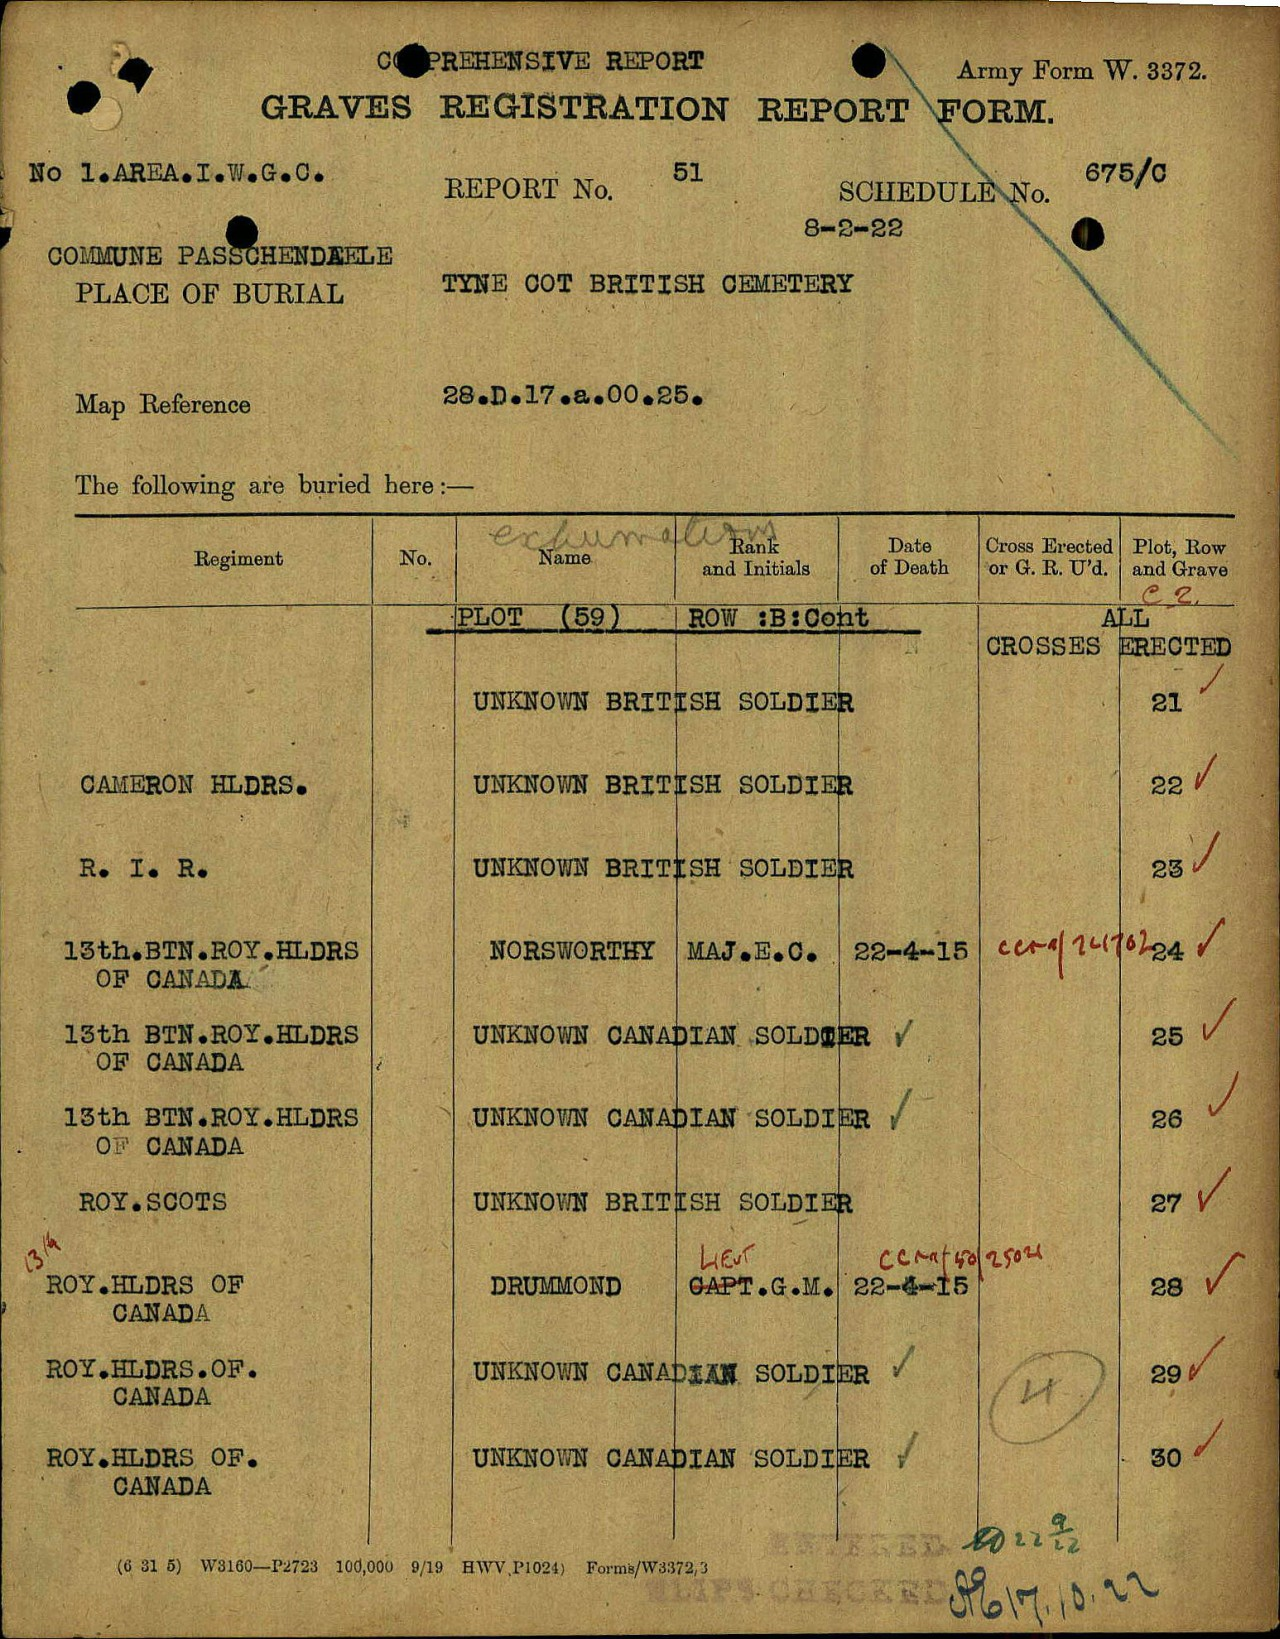 Grave Registration Report – The CWGC Graves Registration Report Form (GRRF) shows that Major Norsworthy is buried in Plot 59 Row B Grave 24 of the Tyne Cot (British) Cemetery. Five (5) other men of the 13th Battalion are listed on the same page. The GRRF was prepared on the basis of the identification noted on the COG-BR (see other image).